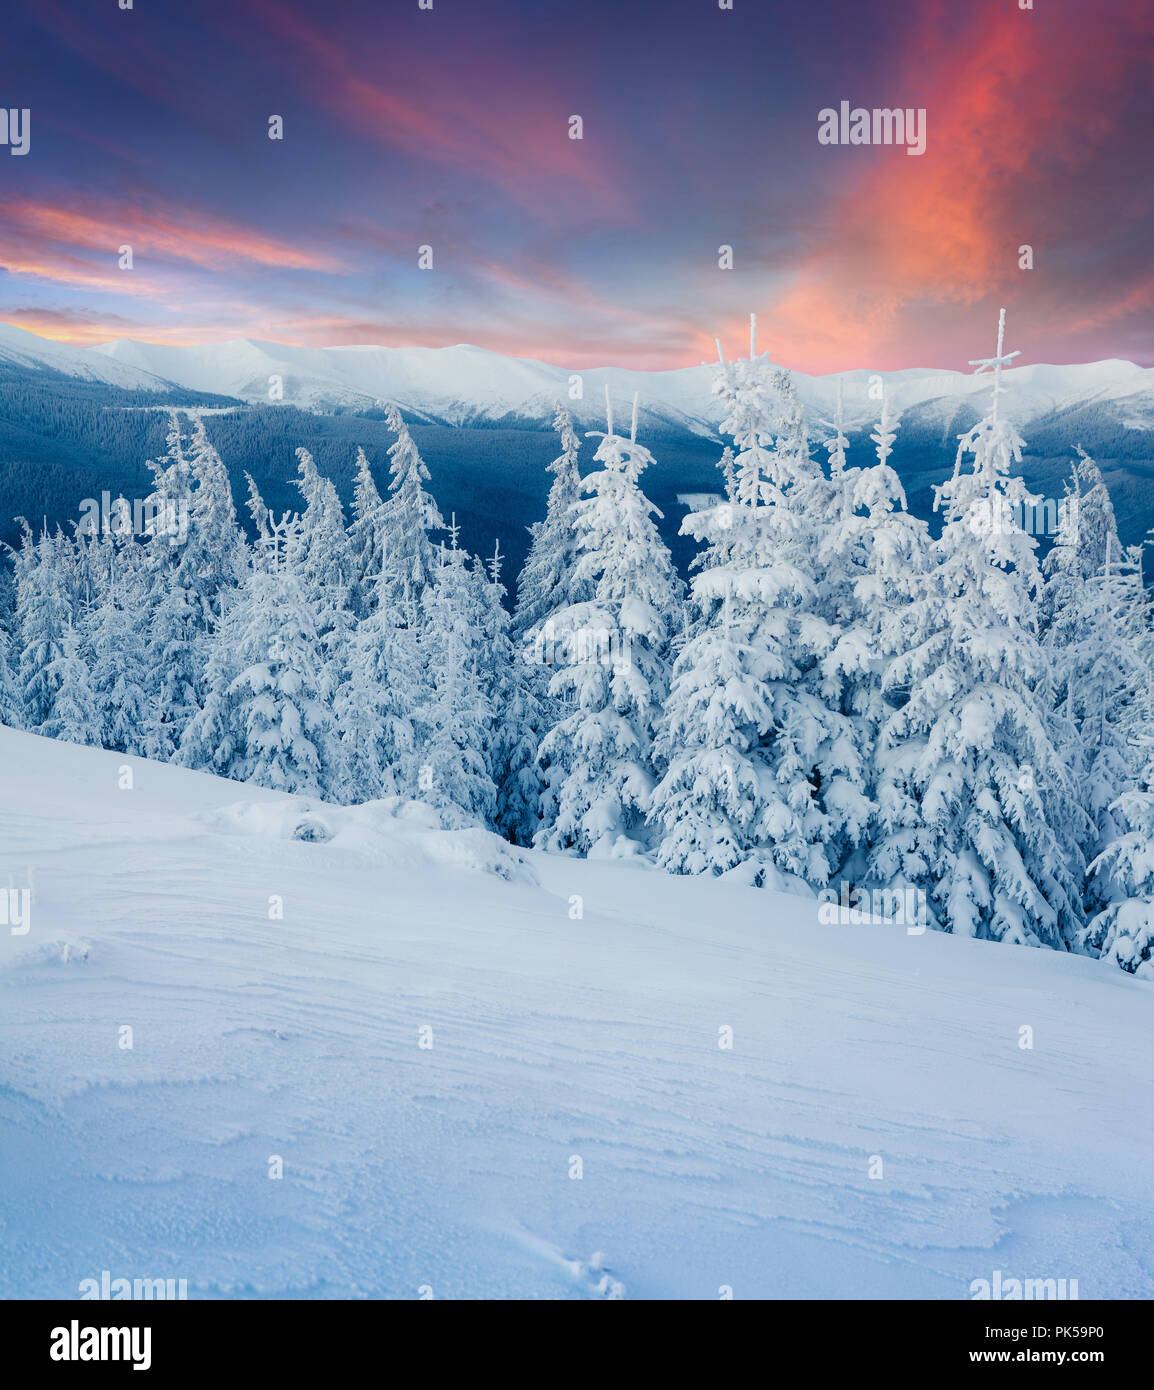 Colorful winter scene in the Carpathian mountains. Fir trees covered fresh snow at frosty morning. Stock Photo